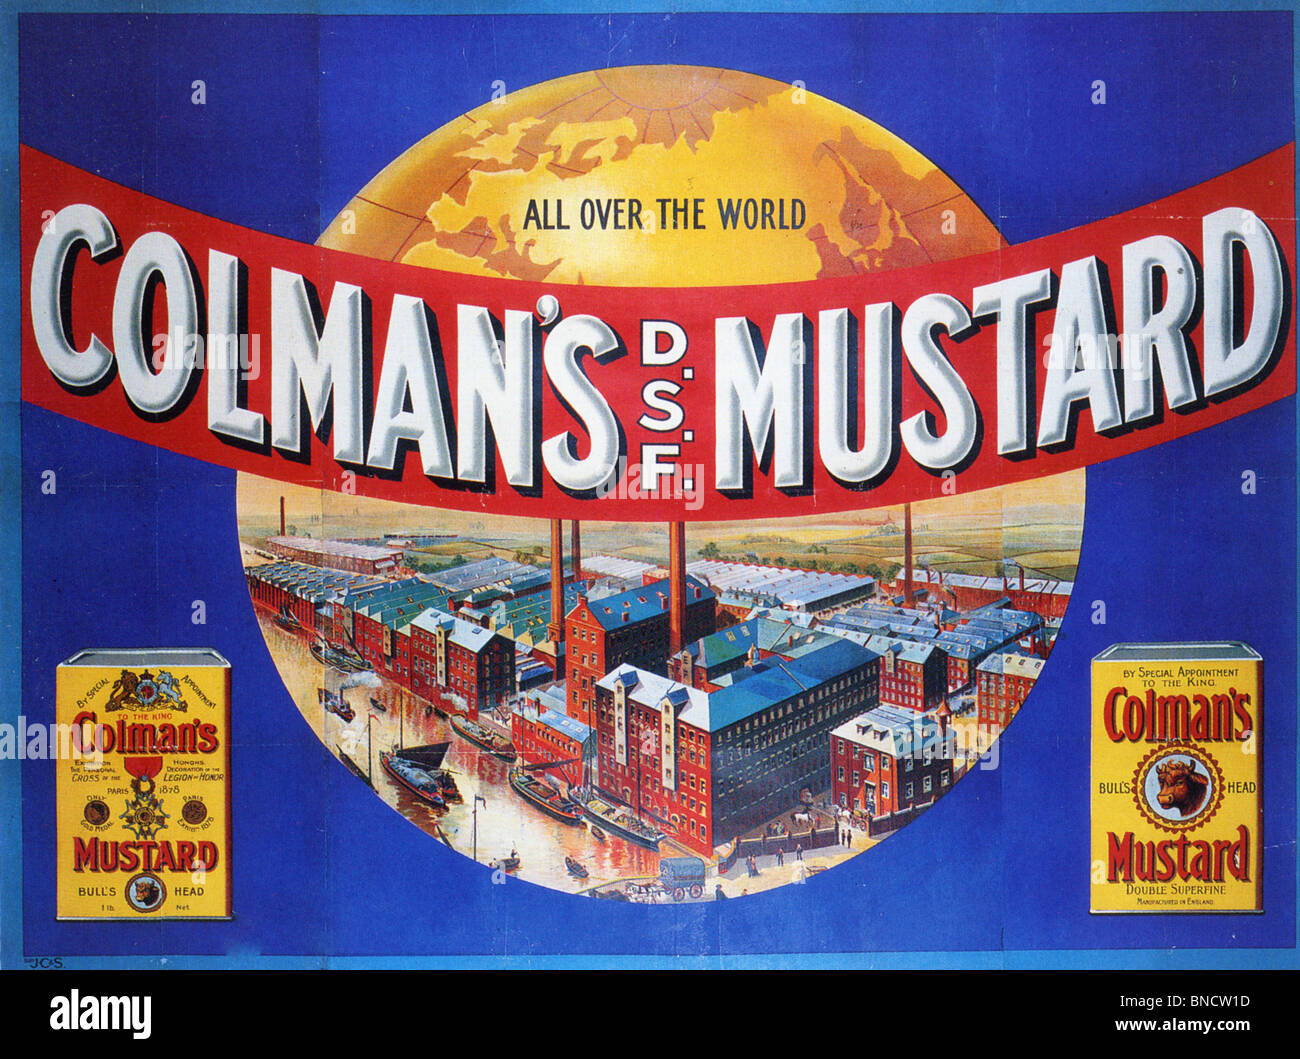 colmans-mustard-advertising-poster-about